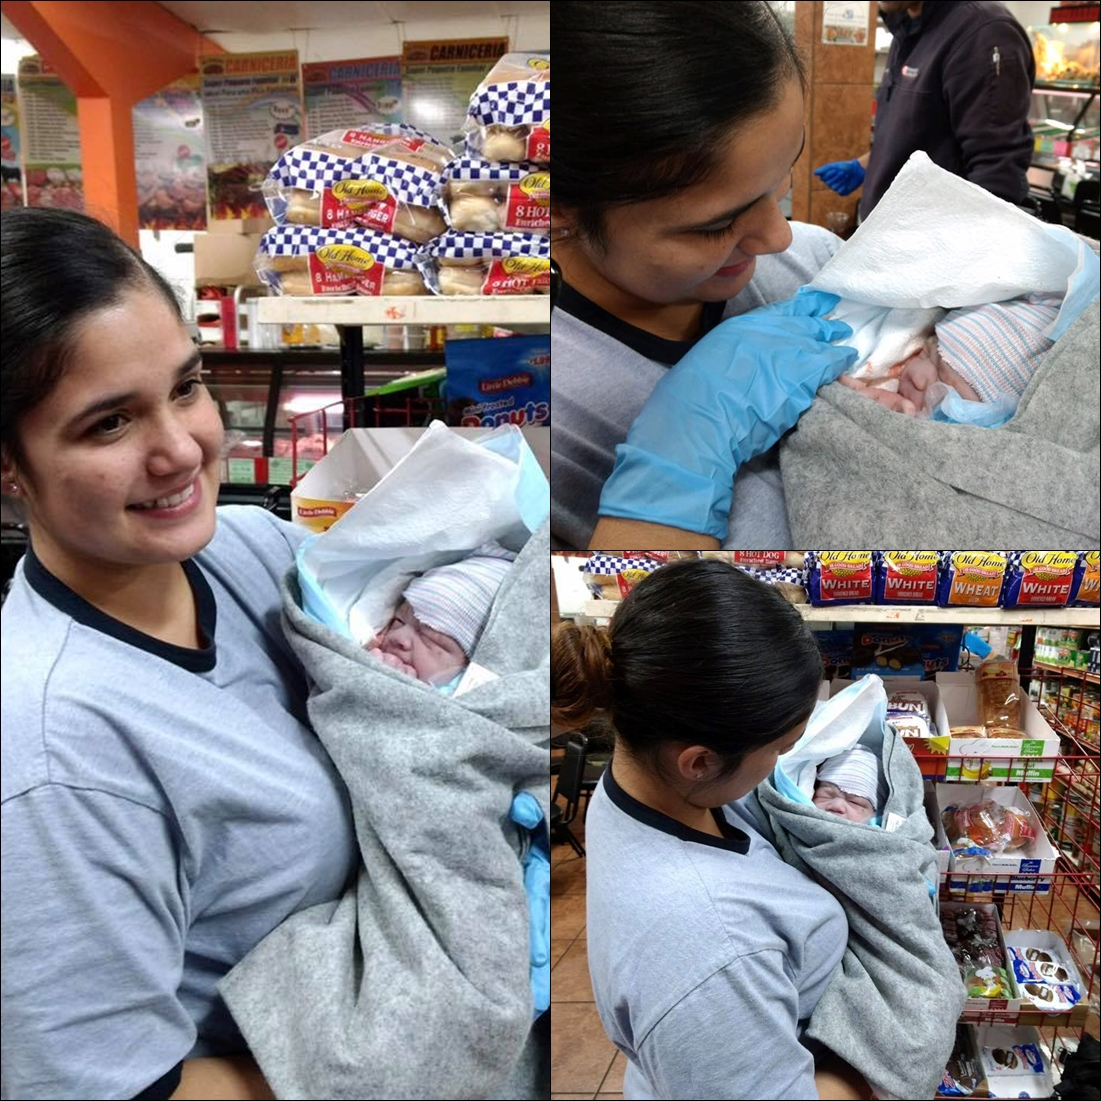 woman gives birth grocery store